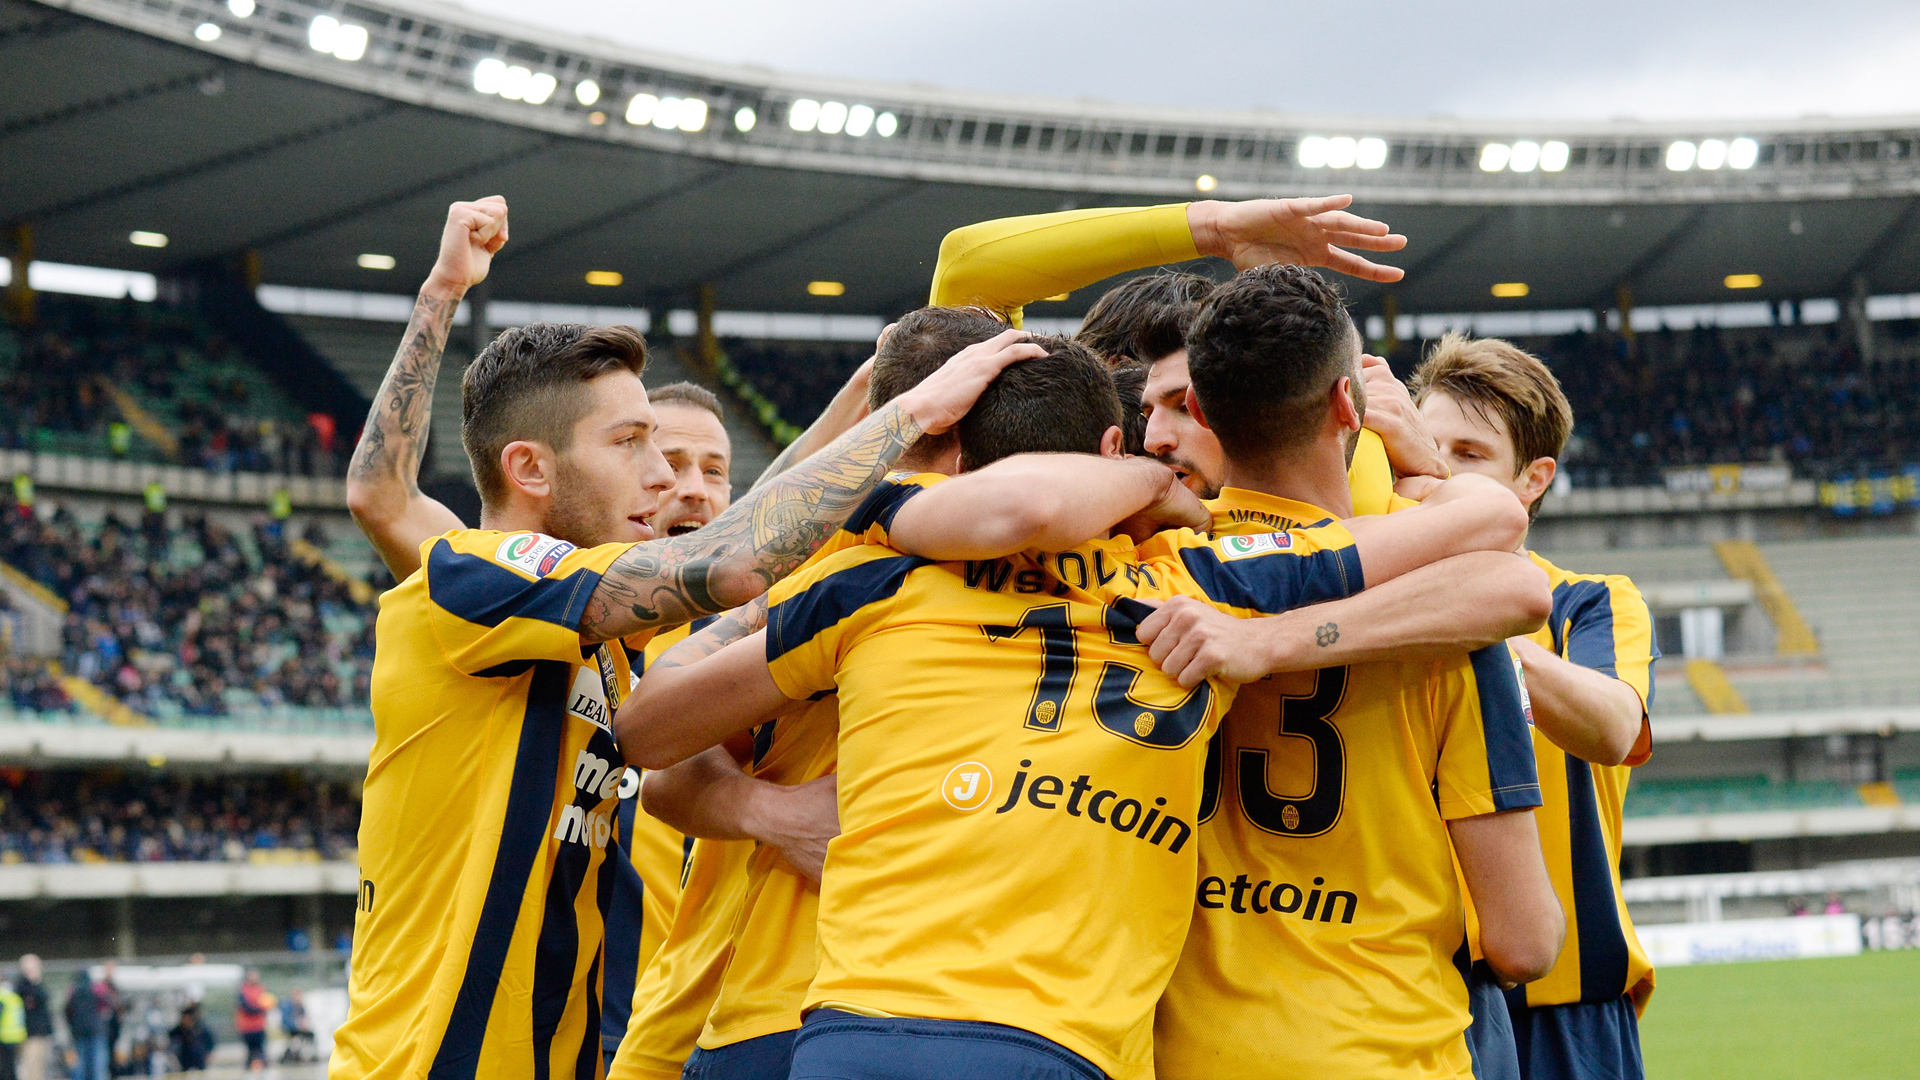 Video: Bologna vs Hellas Verona